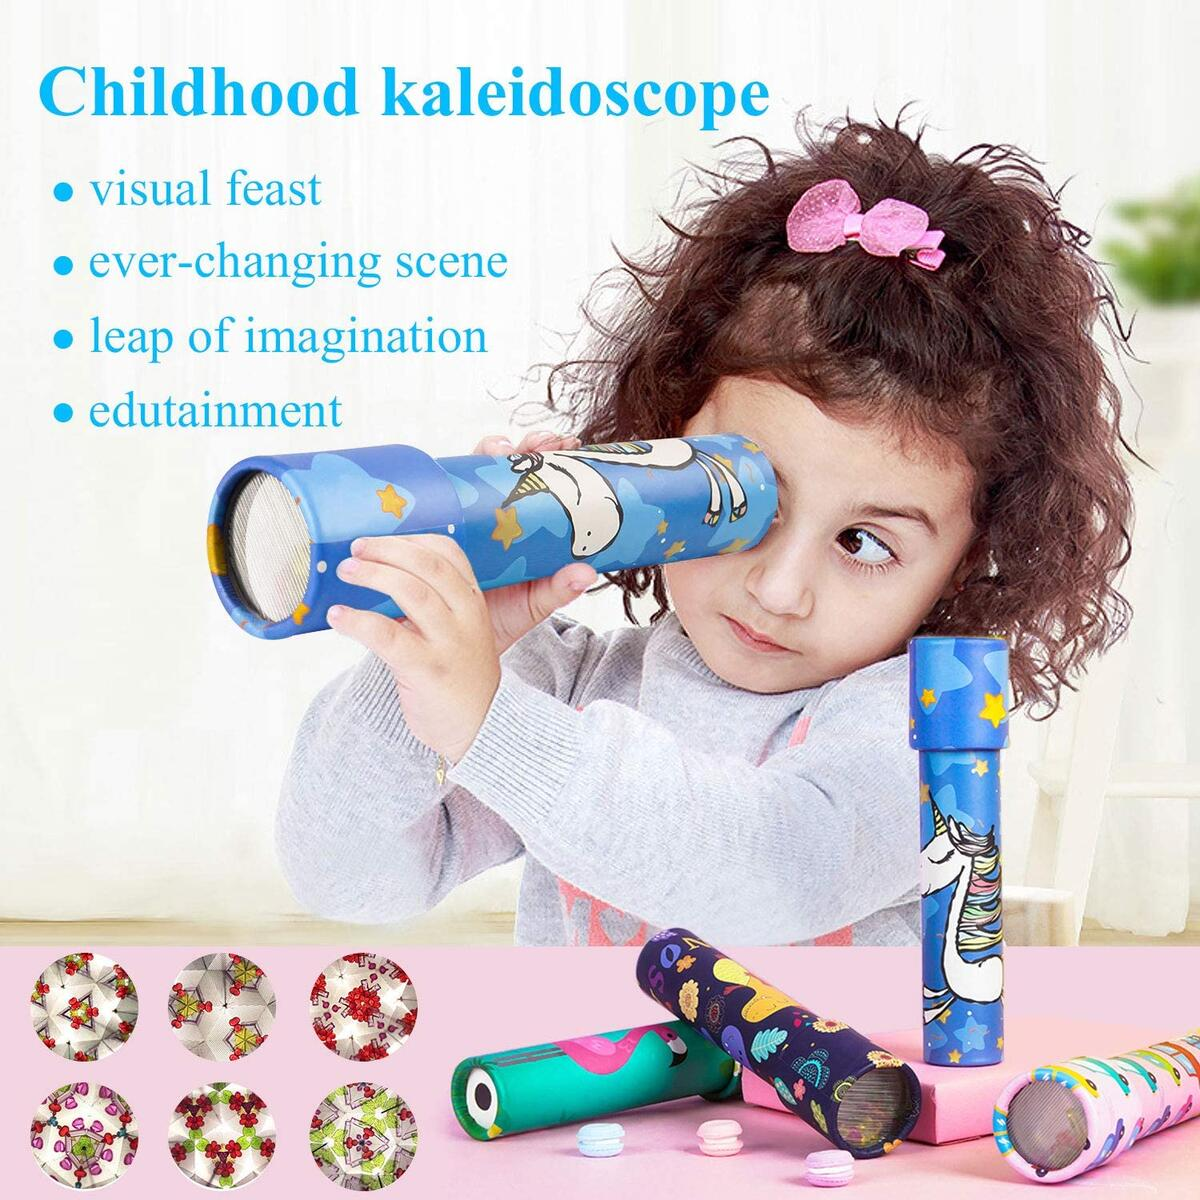 HAPTIME Classic Kaleidoscopes Old Fashioned Vintage Toys for Kids, Party Favors Perfect as Stock Stuffers Bag Fillers School Classroom Prizes (Set of 12)